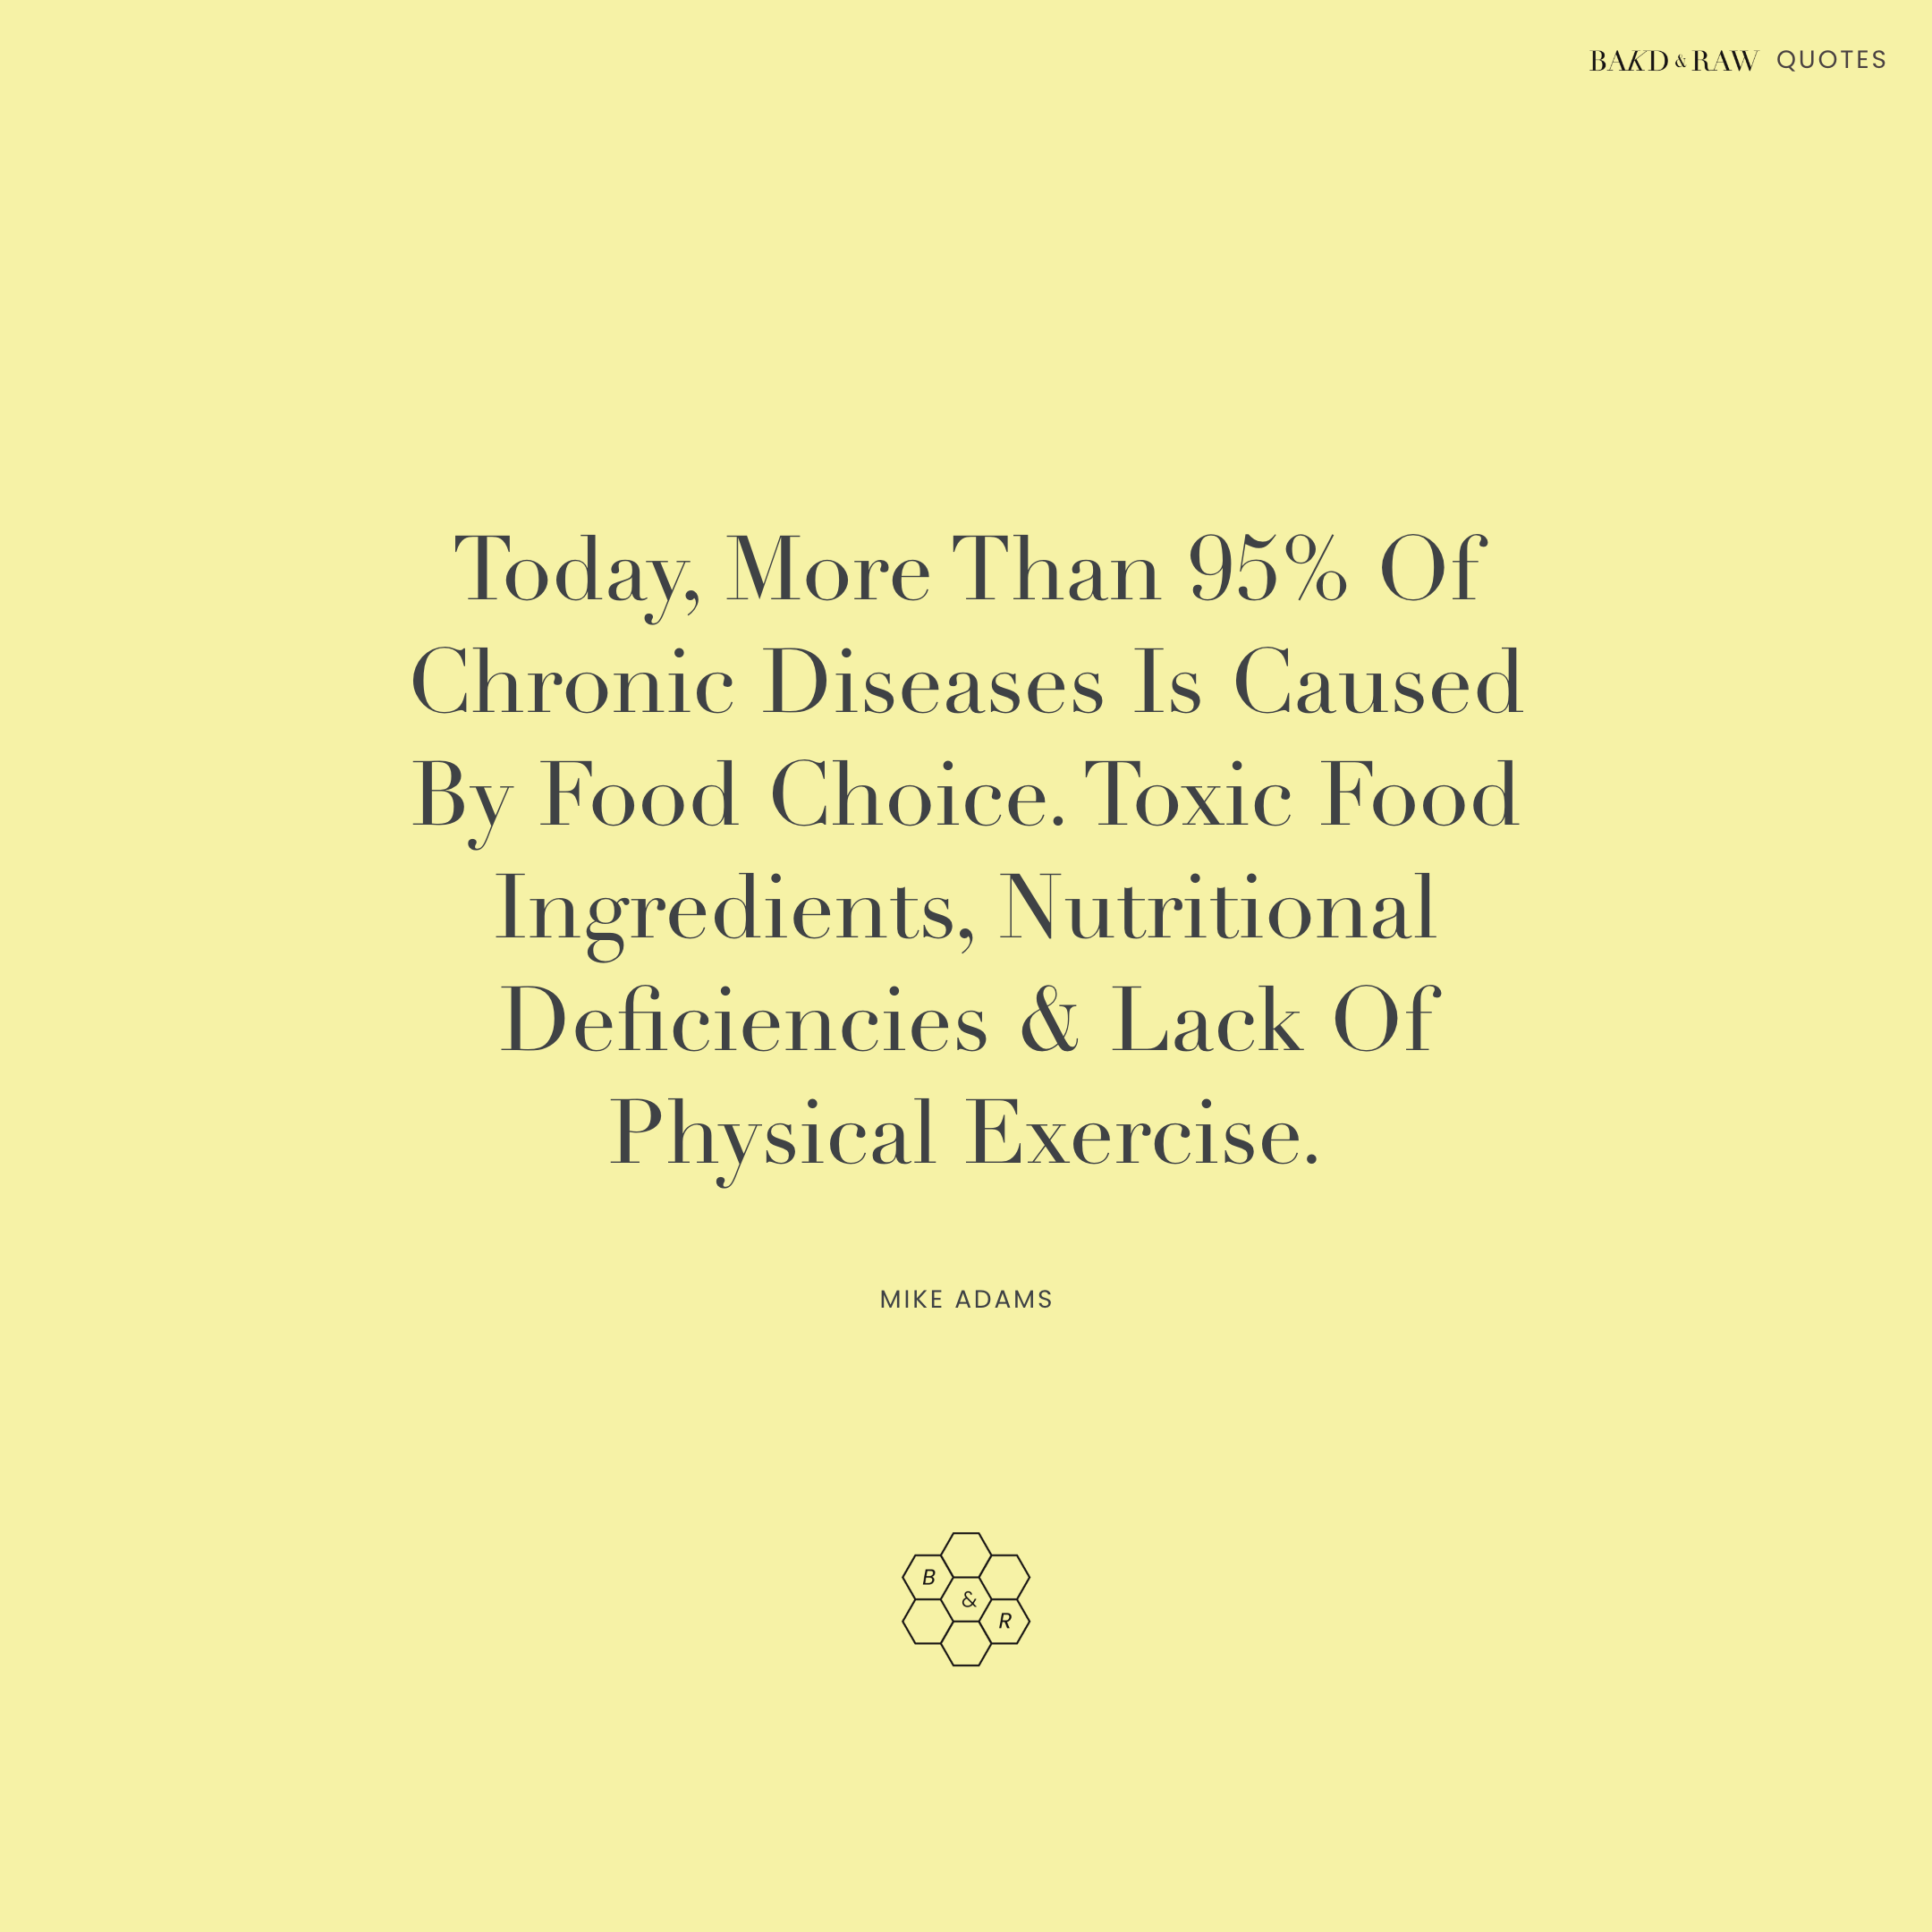 95% of chronic diseases, Bakd&Raw Food Quotes by Karolin Baitinger